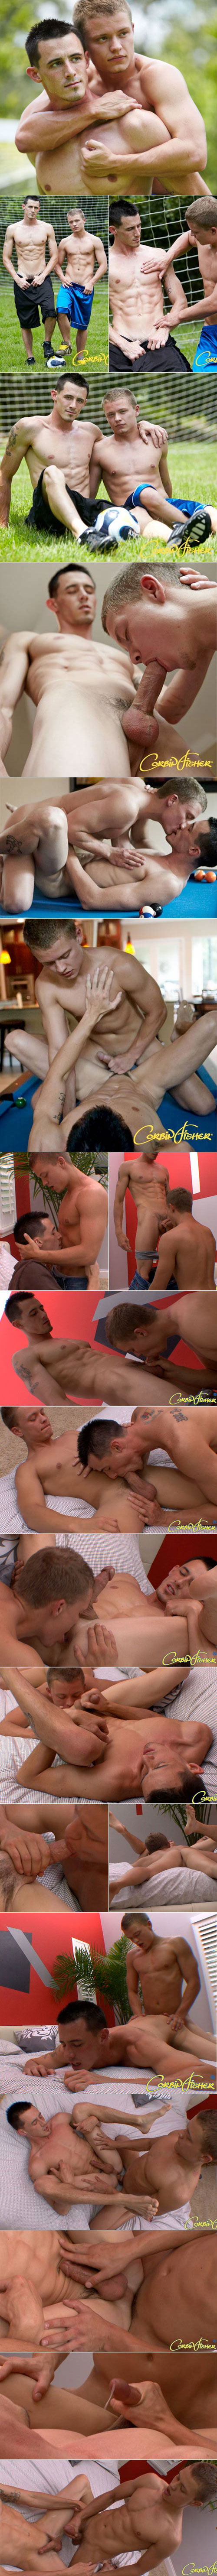 CorbinFisher: Micah's first time